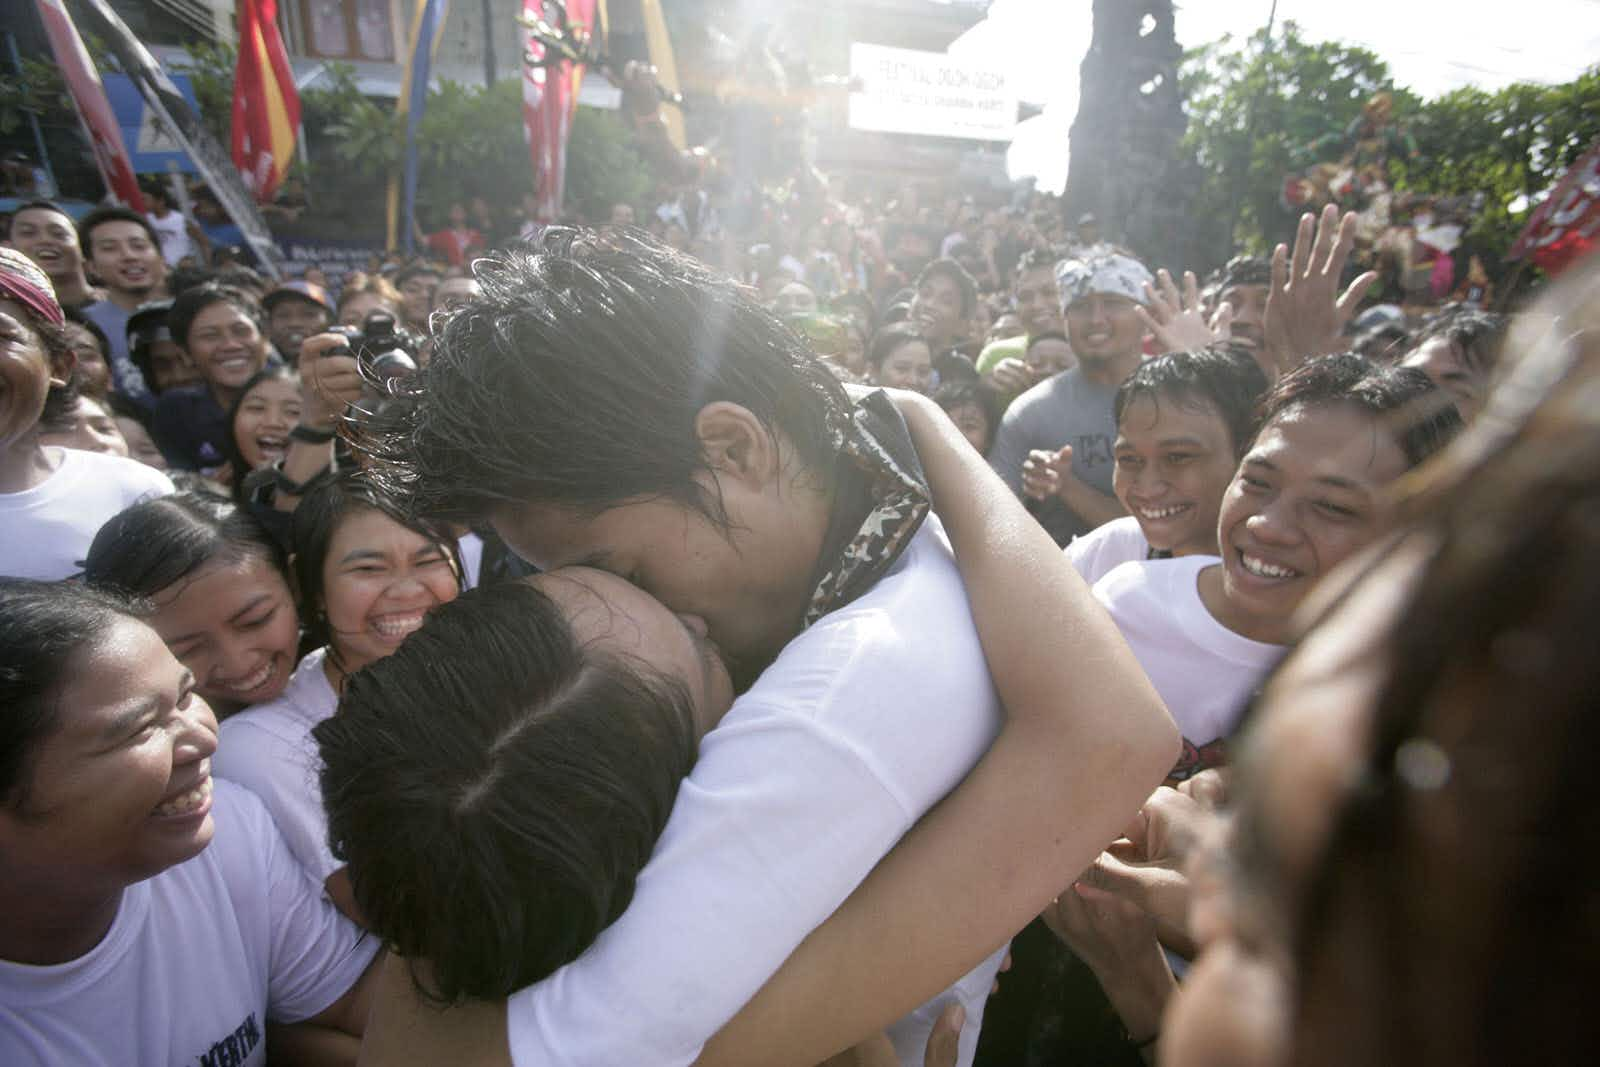 """DENPASAR, INDONESIA - MARCH 20:  A young Balinese couple kiss during the Kissing Festival held in Sesetan village on March 20, 2007 near Denpasar, Bali, Indonesia. This annual Kissing Festival is held just one day after Balinese Hindus celebrate the Nyepi Day or Silence Day. The Kissing Festival known locally as """"Med-Medan"""", allows male and female teenagers to kiss each other in public. The kissing begins after first praying in the """"Banjar"""" or village temple and is used to help protect the village from bad luck. While the festival has attracted outsiders, the only people permitted to participate are the local Banjar Kaja Sesetan villagers. (Photo by Dimas Ardian/Getty Images)"""